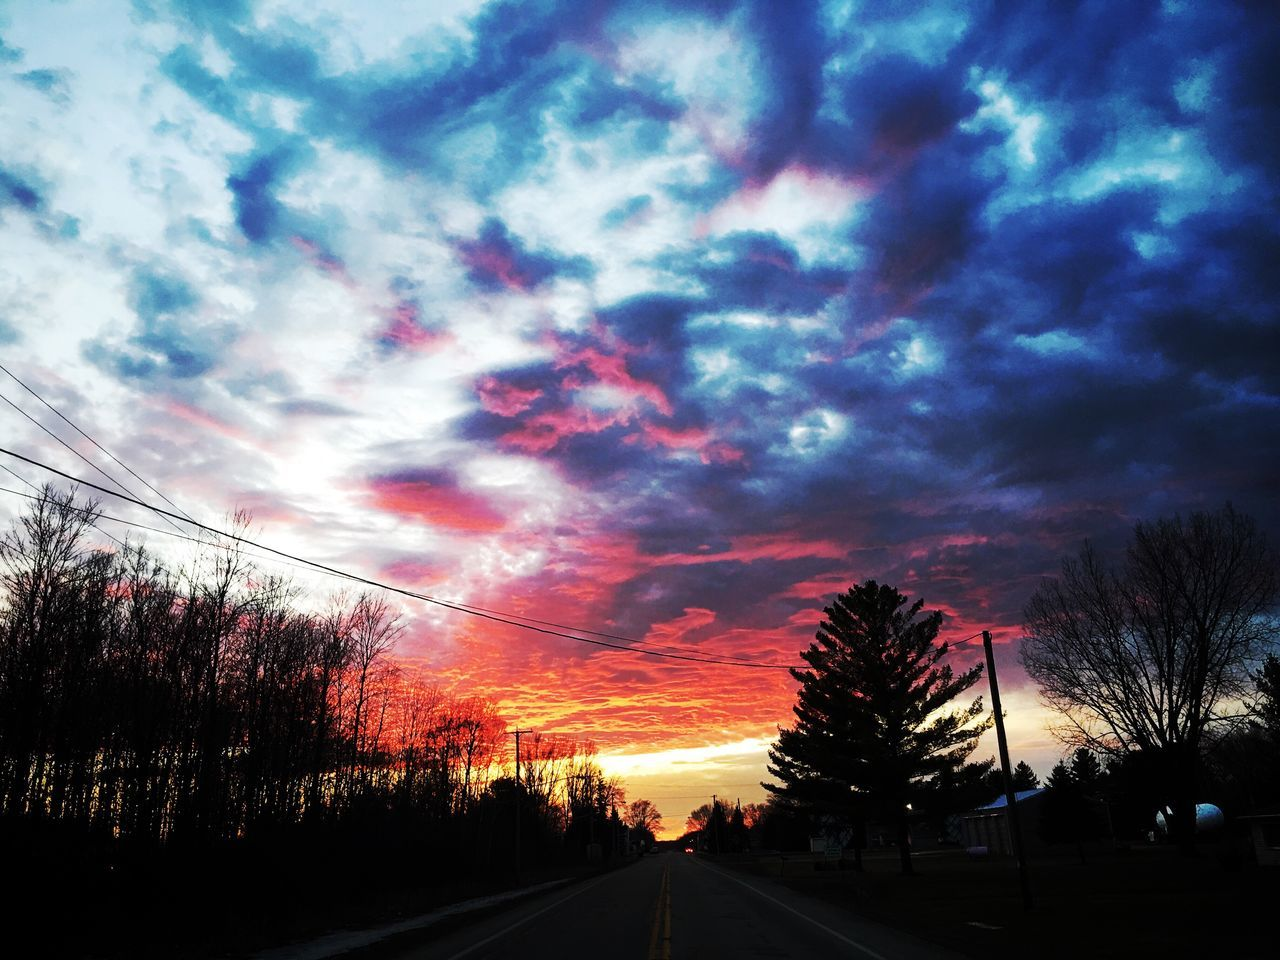 tree, cloud - sky, sky, silhouette, sunset, scenics, nature, dramatic sky, beauty in nature, tranquil scene, road, tranquility, no people, outdoors, bare tree, transportation, landscape, day